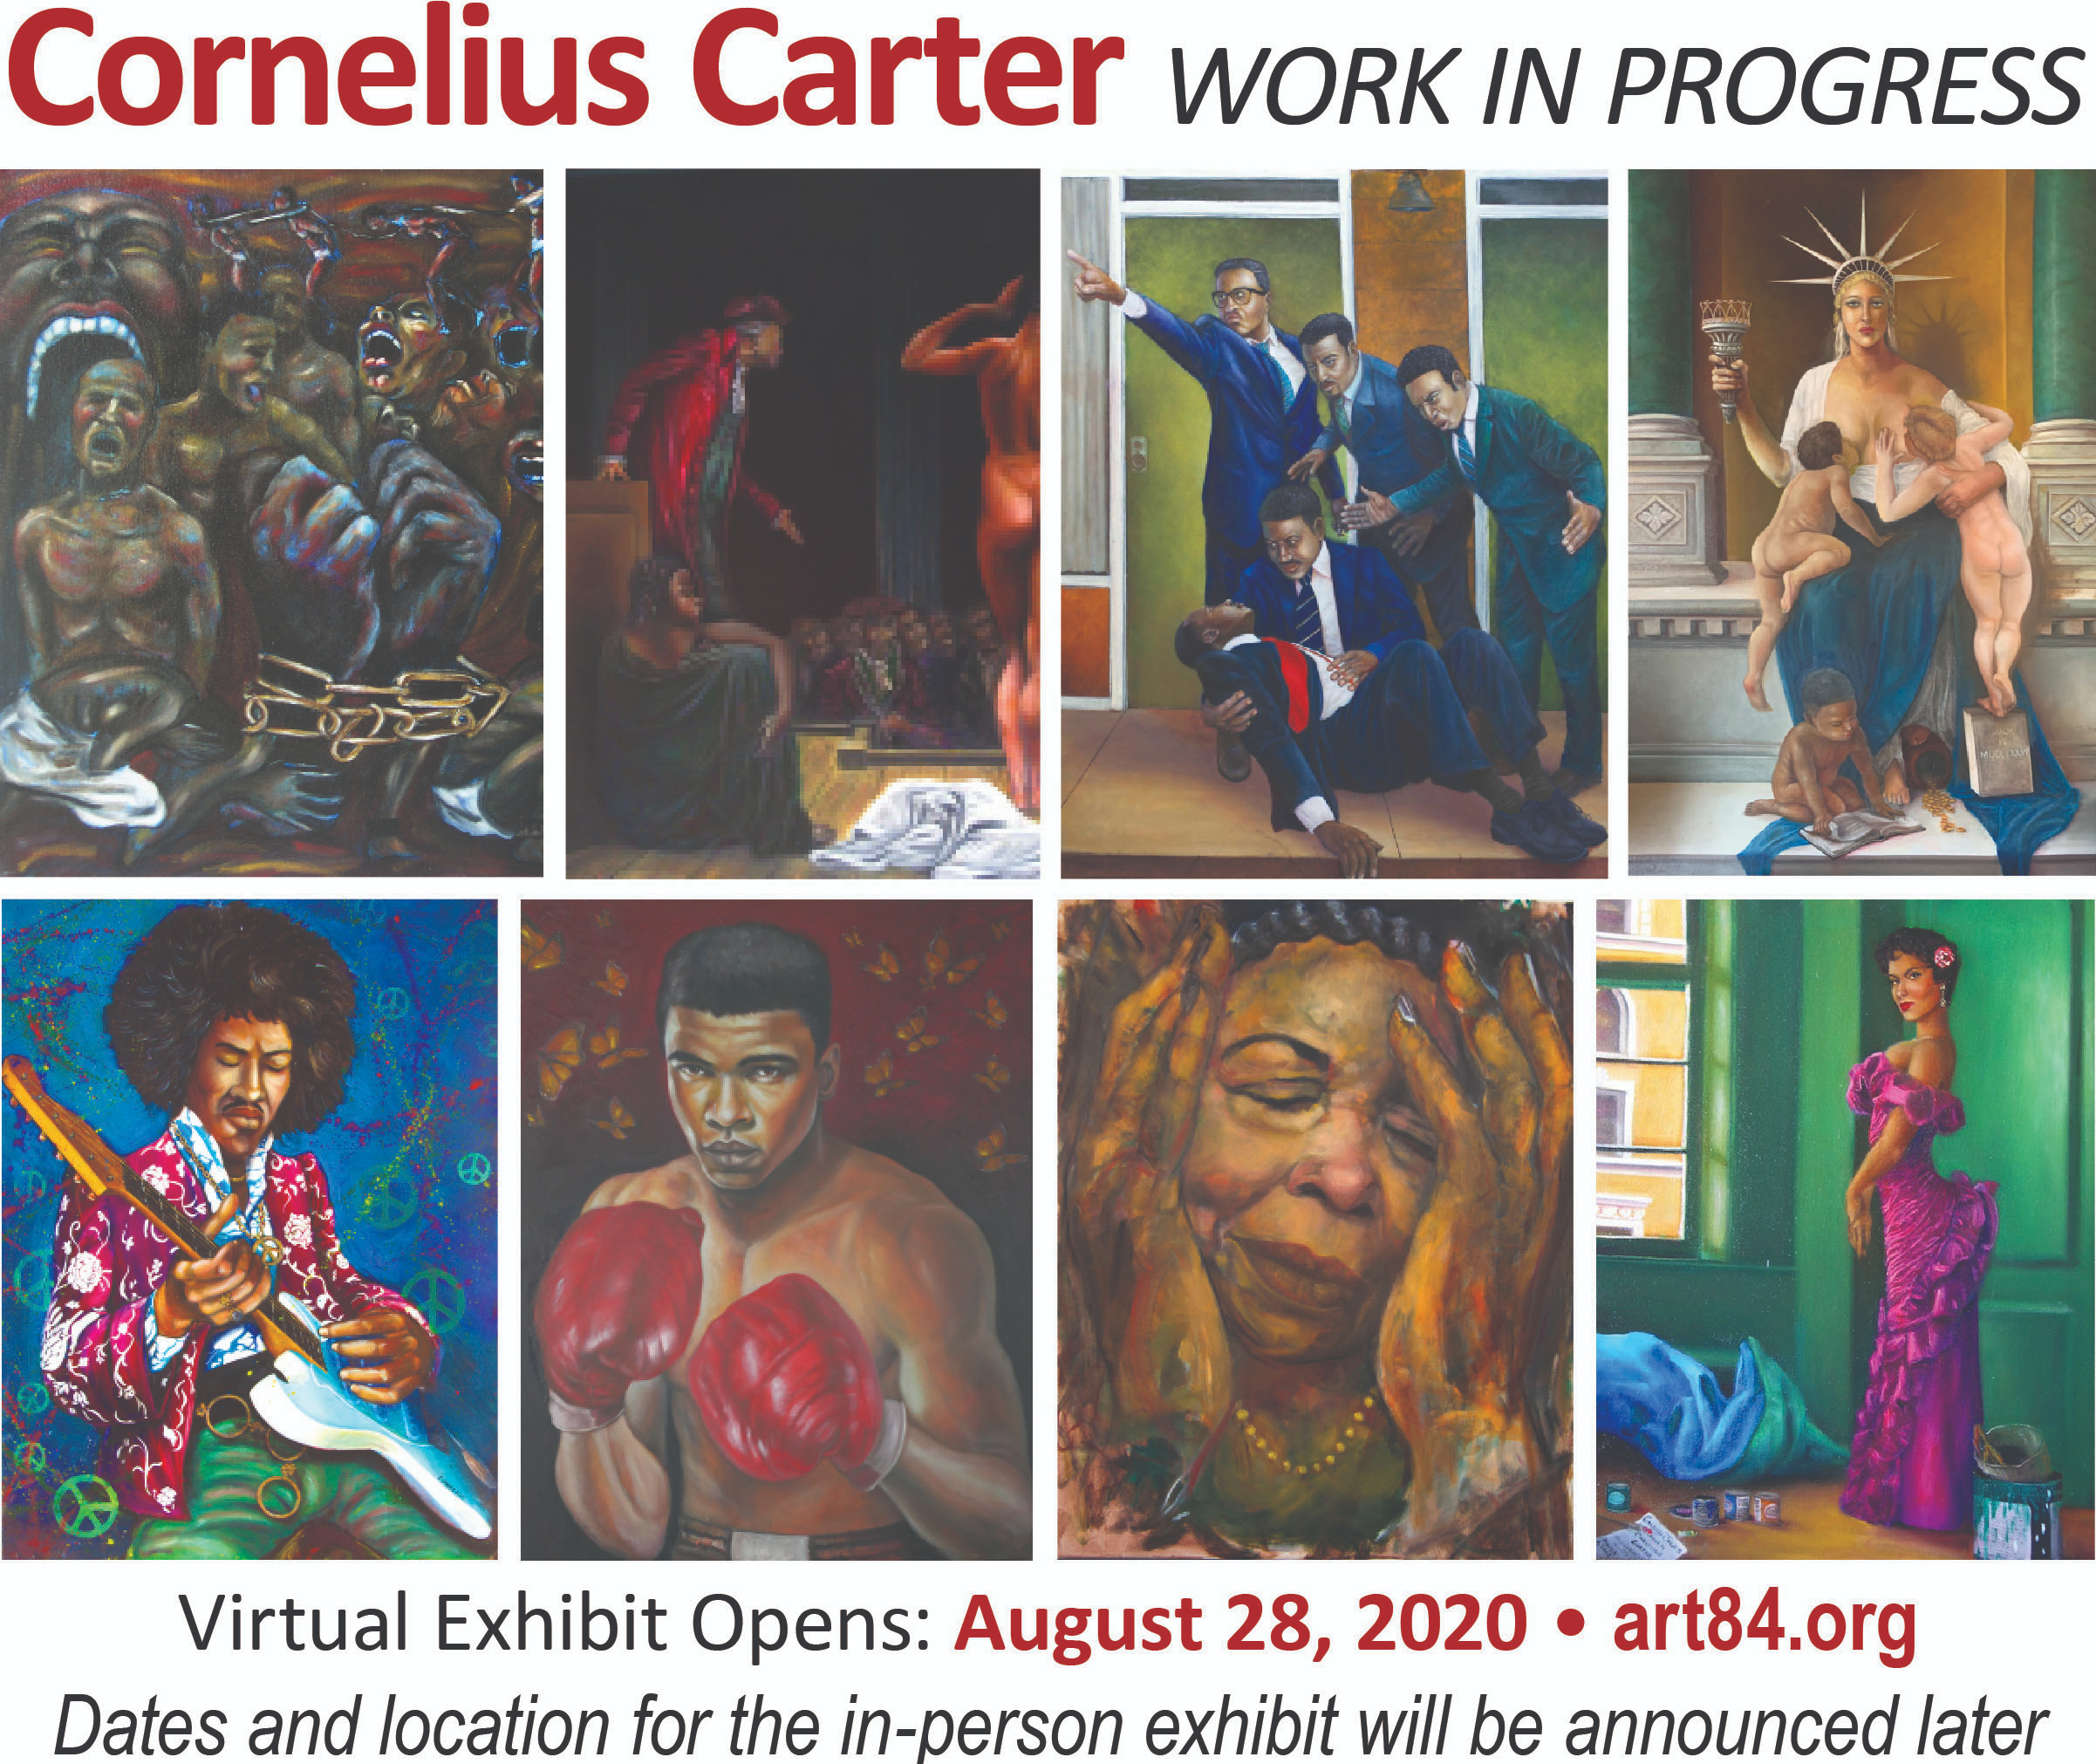 Virtual Exhibit Opens: August 28, 2020 -- Art 84.org